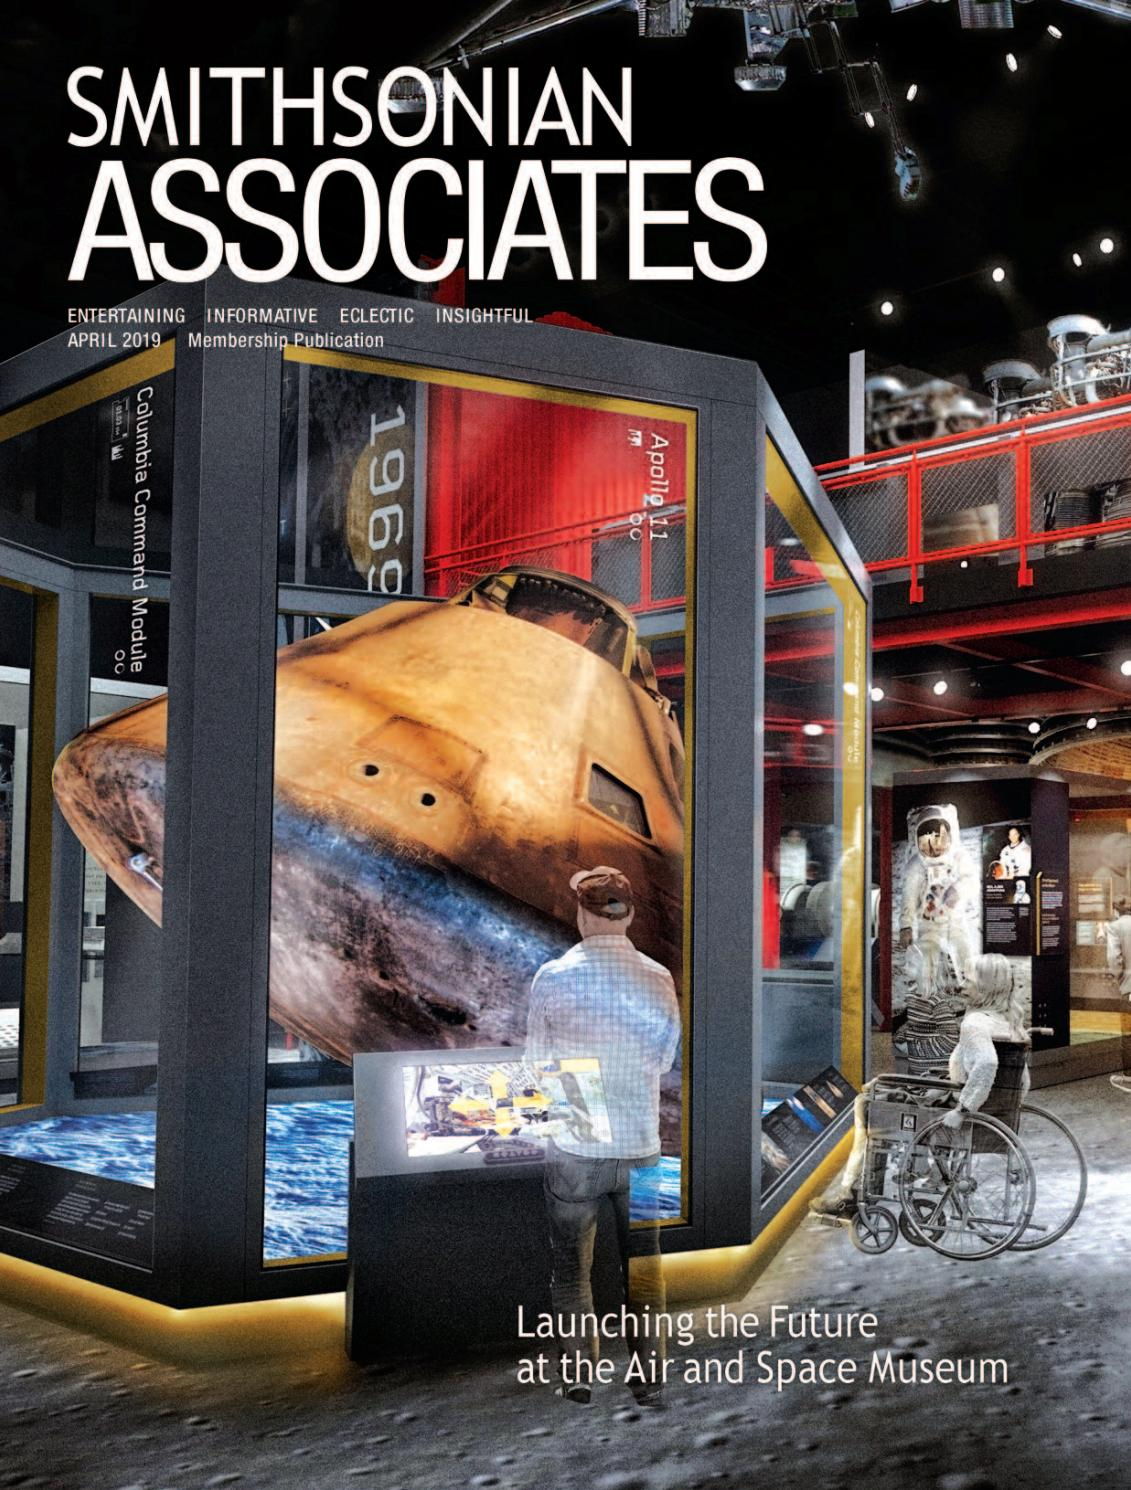 Smithsonian Associates April 2019 program guide by Smithsonian